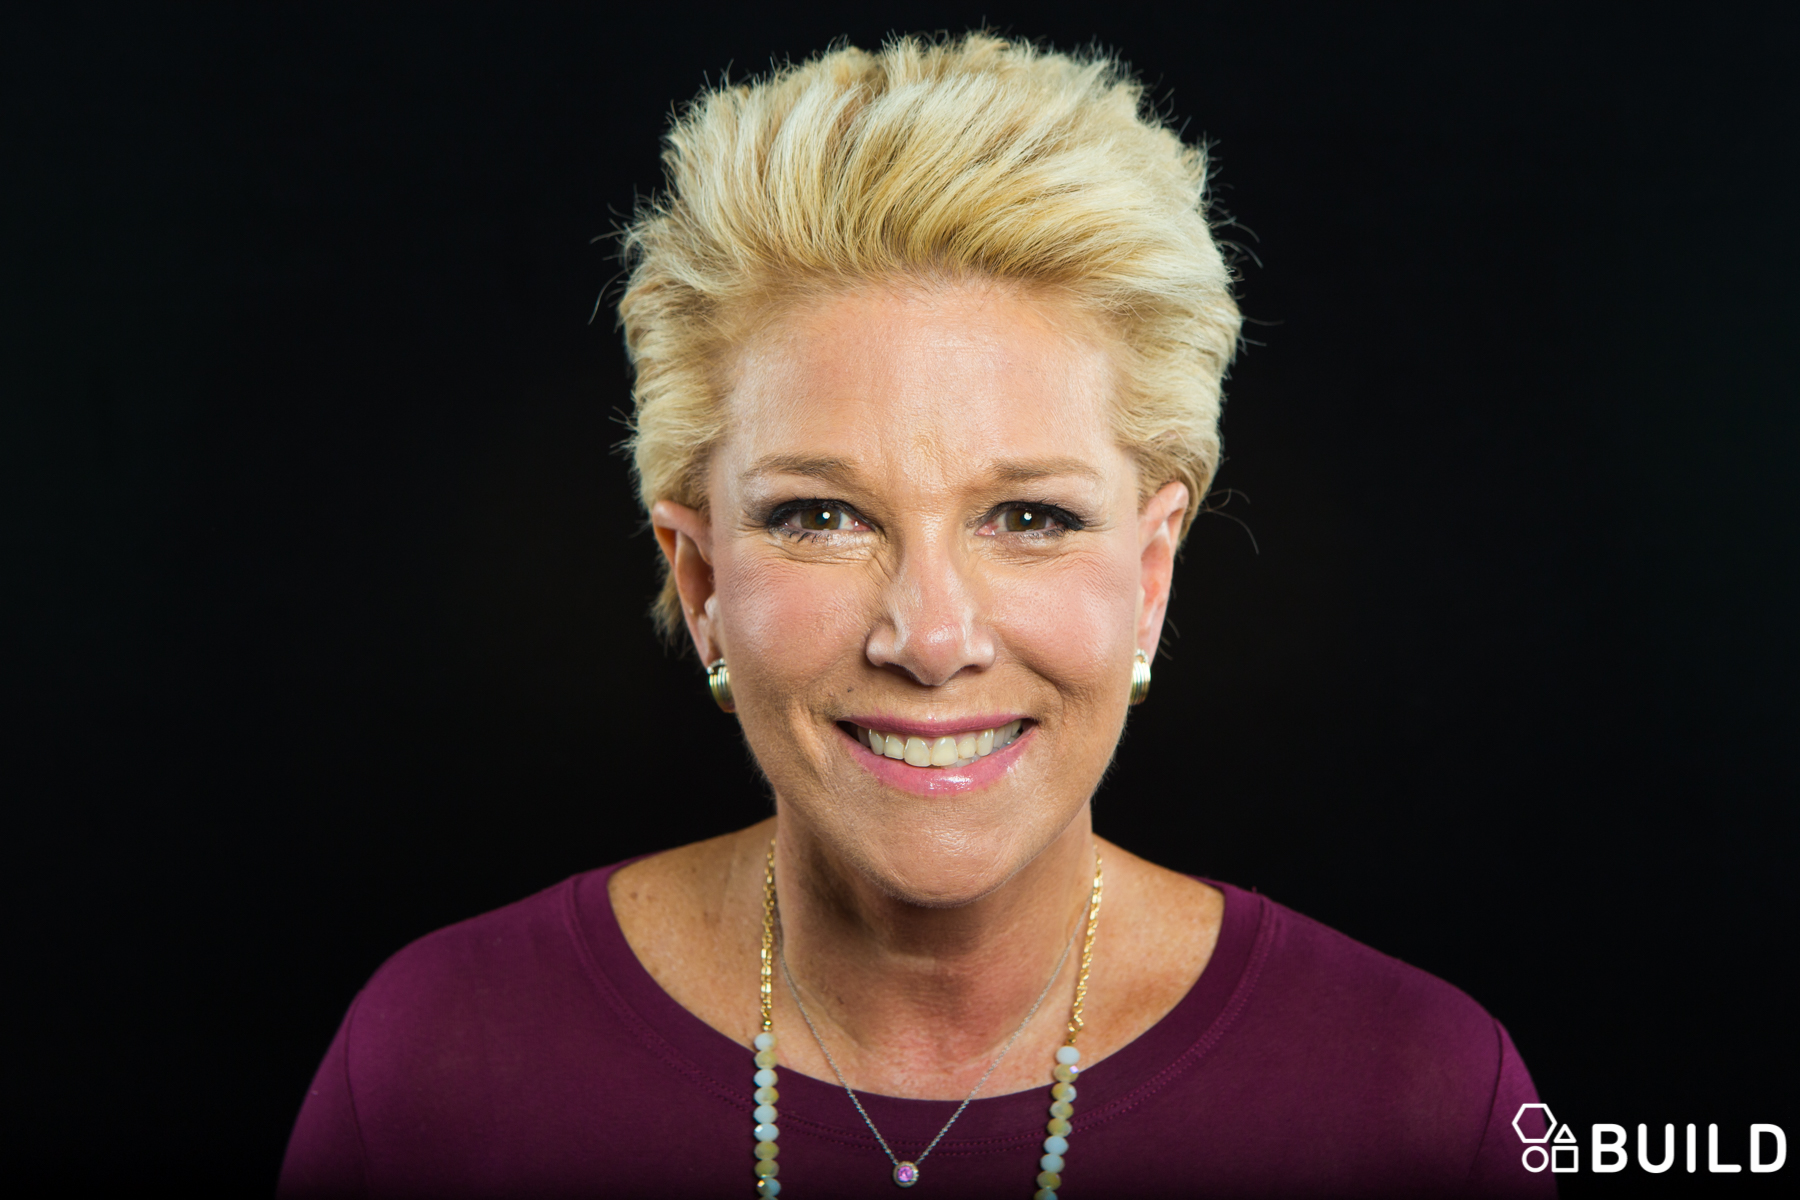 Short hair, don't care: Joan Lunden is chic, cheerful and